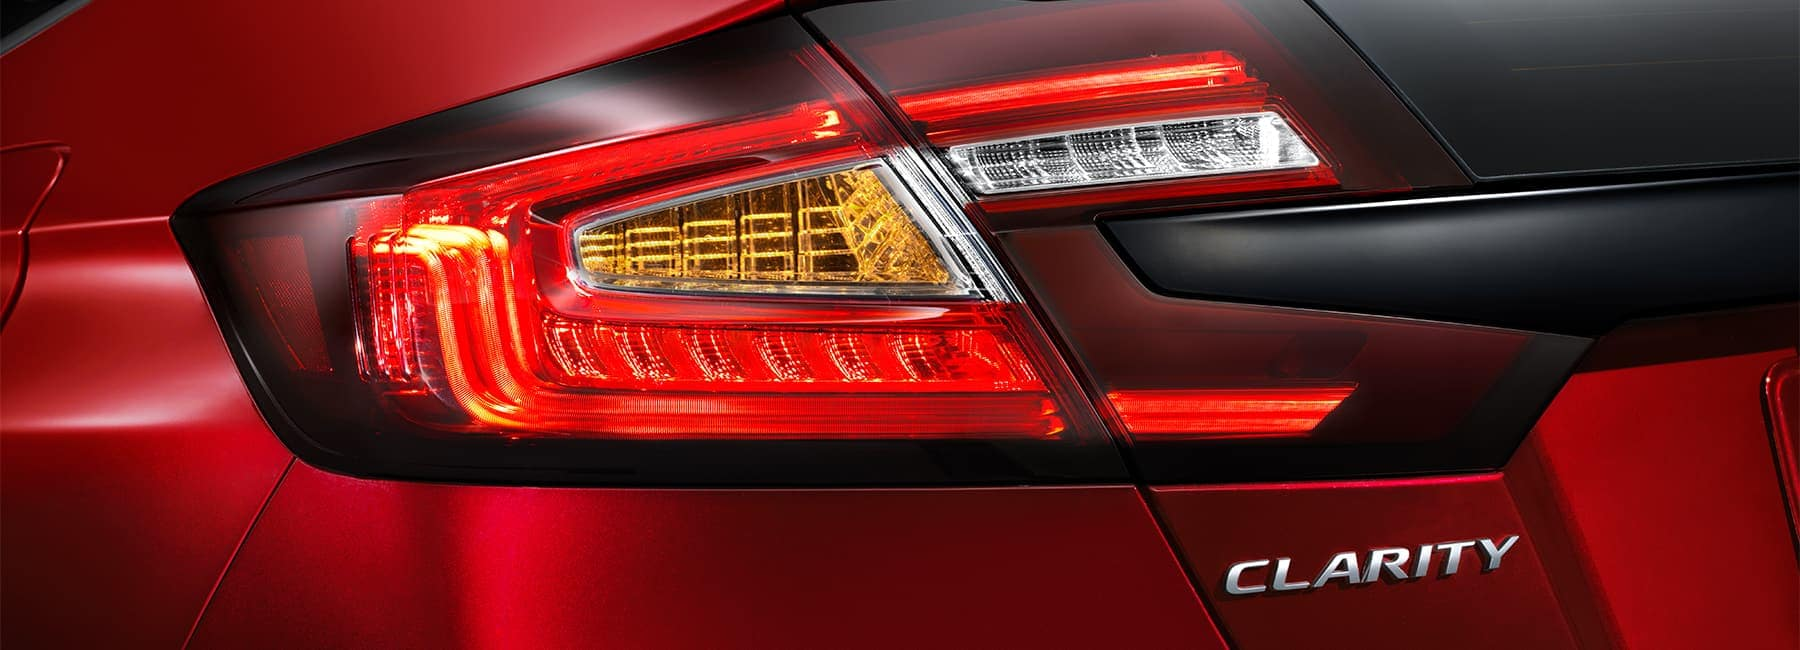 2020 Honda Clarity rear lights